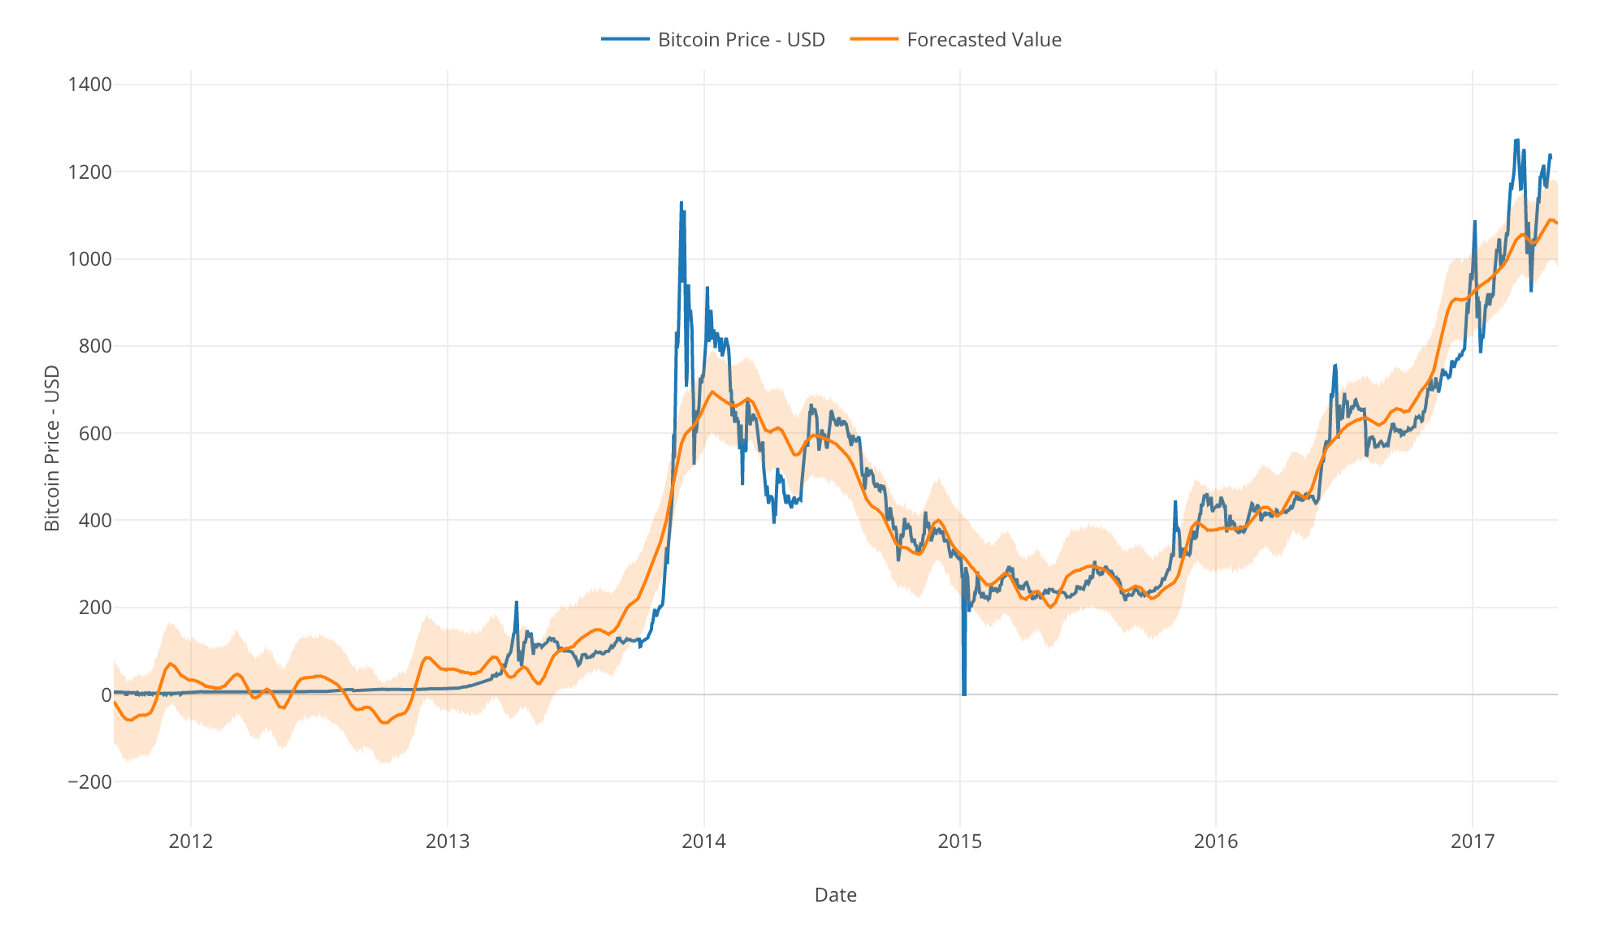 This Is Much Better Than Before And We Can See The Orange Line Of Forecasted Values Following Blue Actual Bitcoin Prices